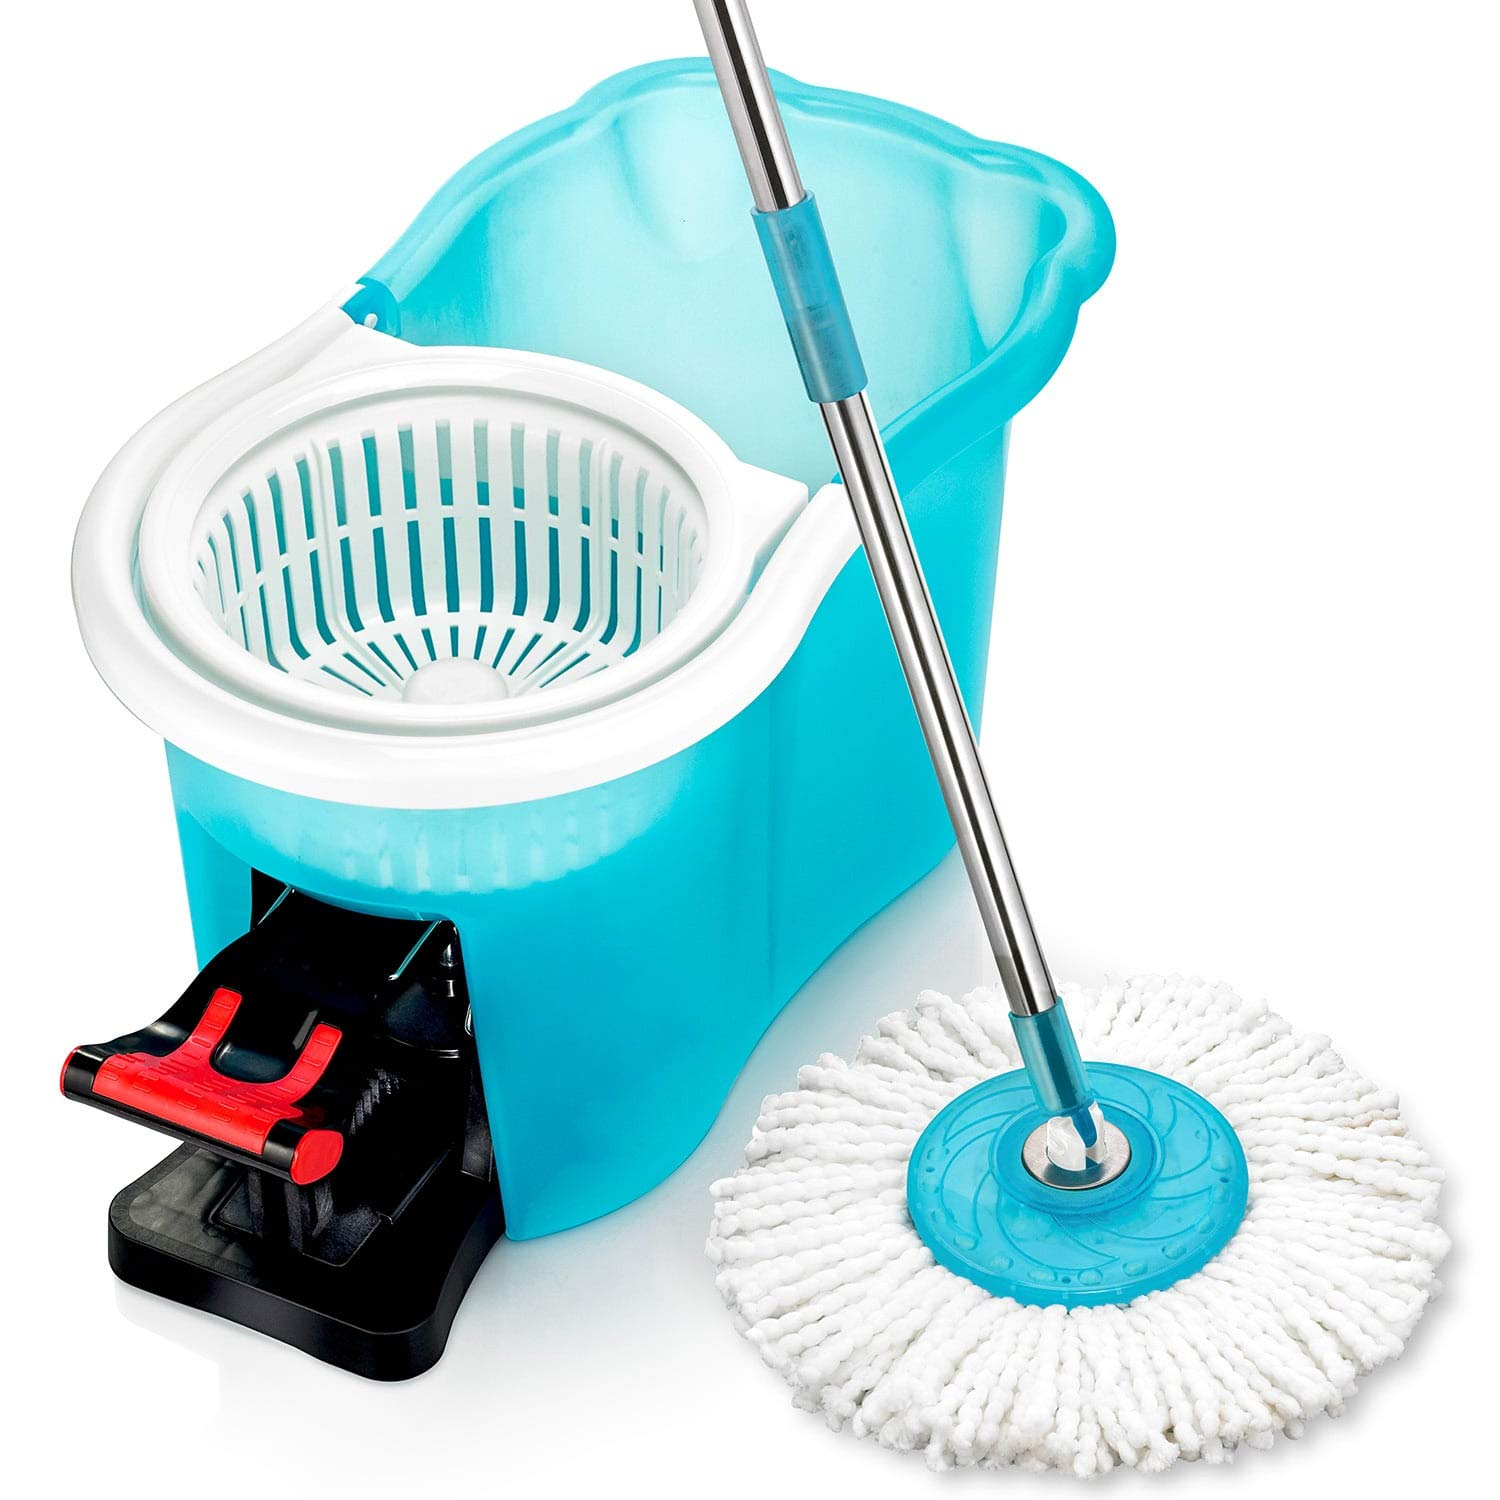 Amazon Com Hurricane Spin Mop Home Cleaning System By Bulbhead Floor Mop With Bucket Hardwood Floor Cleaner Home Kitchen